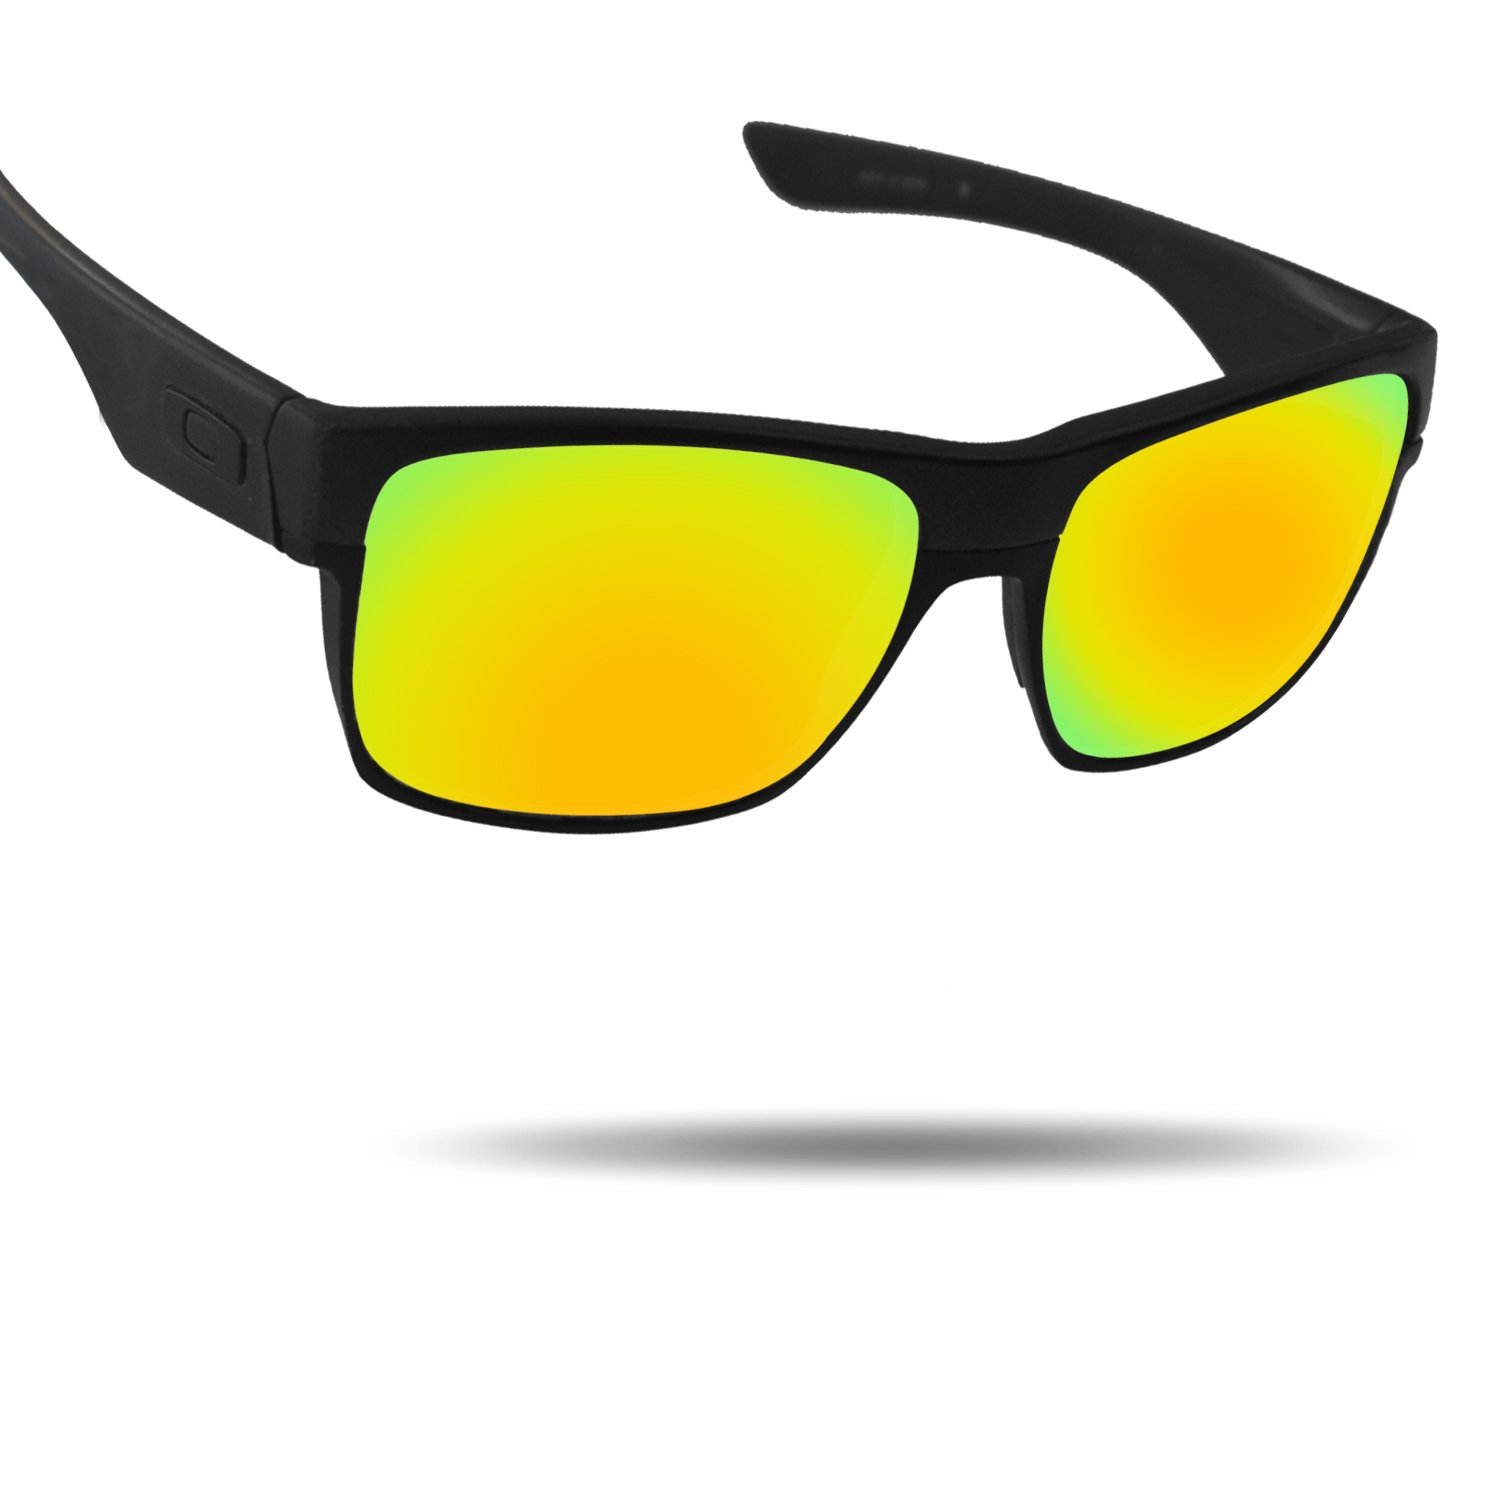 6aed888fccf Amazon.com  Fiskr Anti-saltwater Replacement Lenses for Oakley Twoface  Sunglasses - Various Colors  Clothing